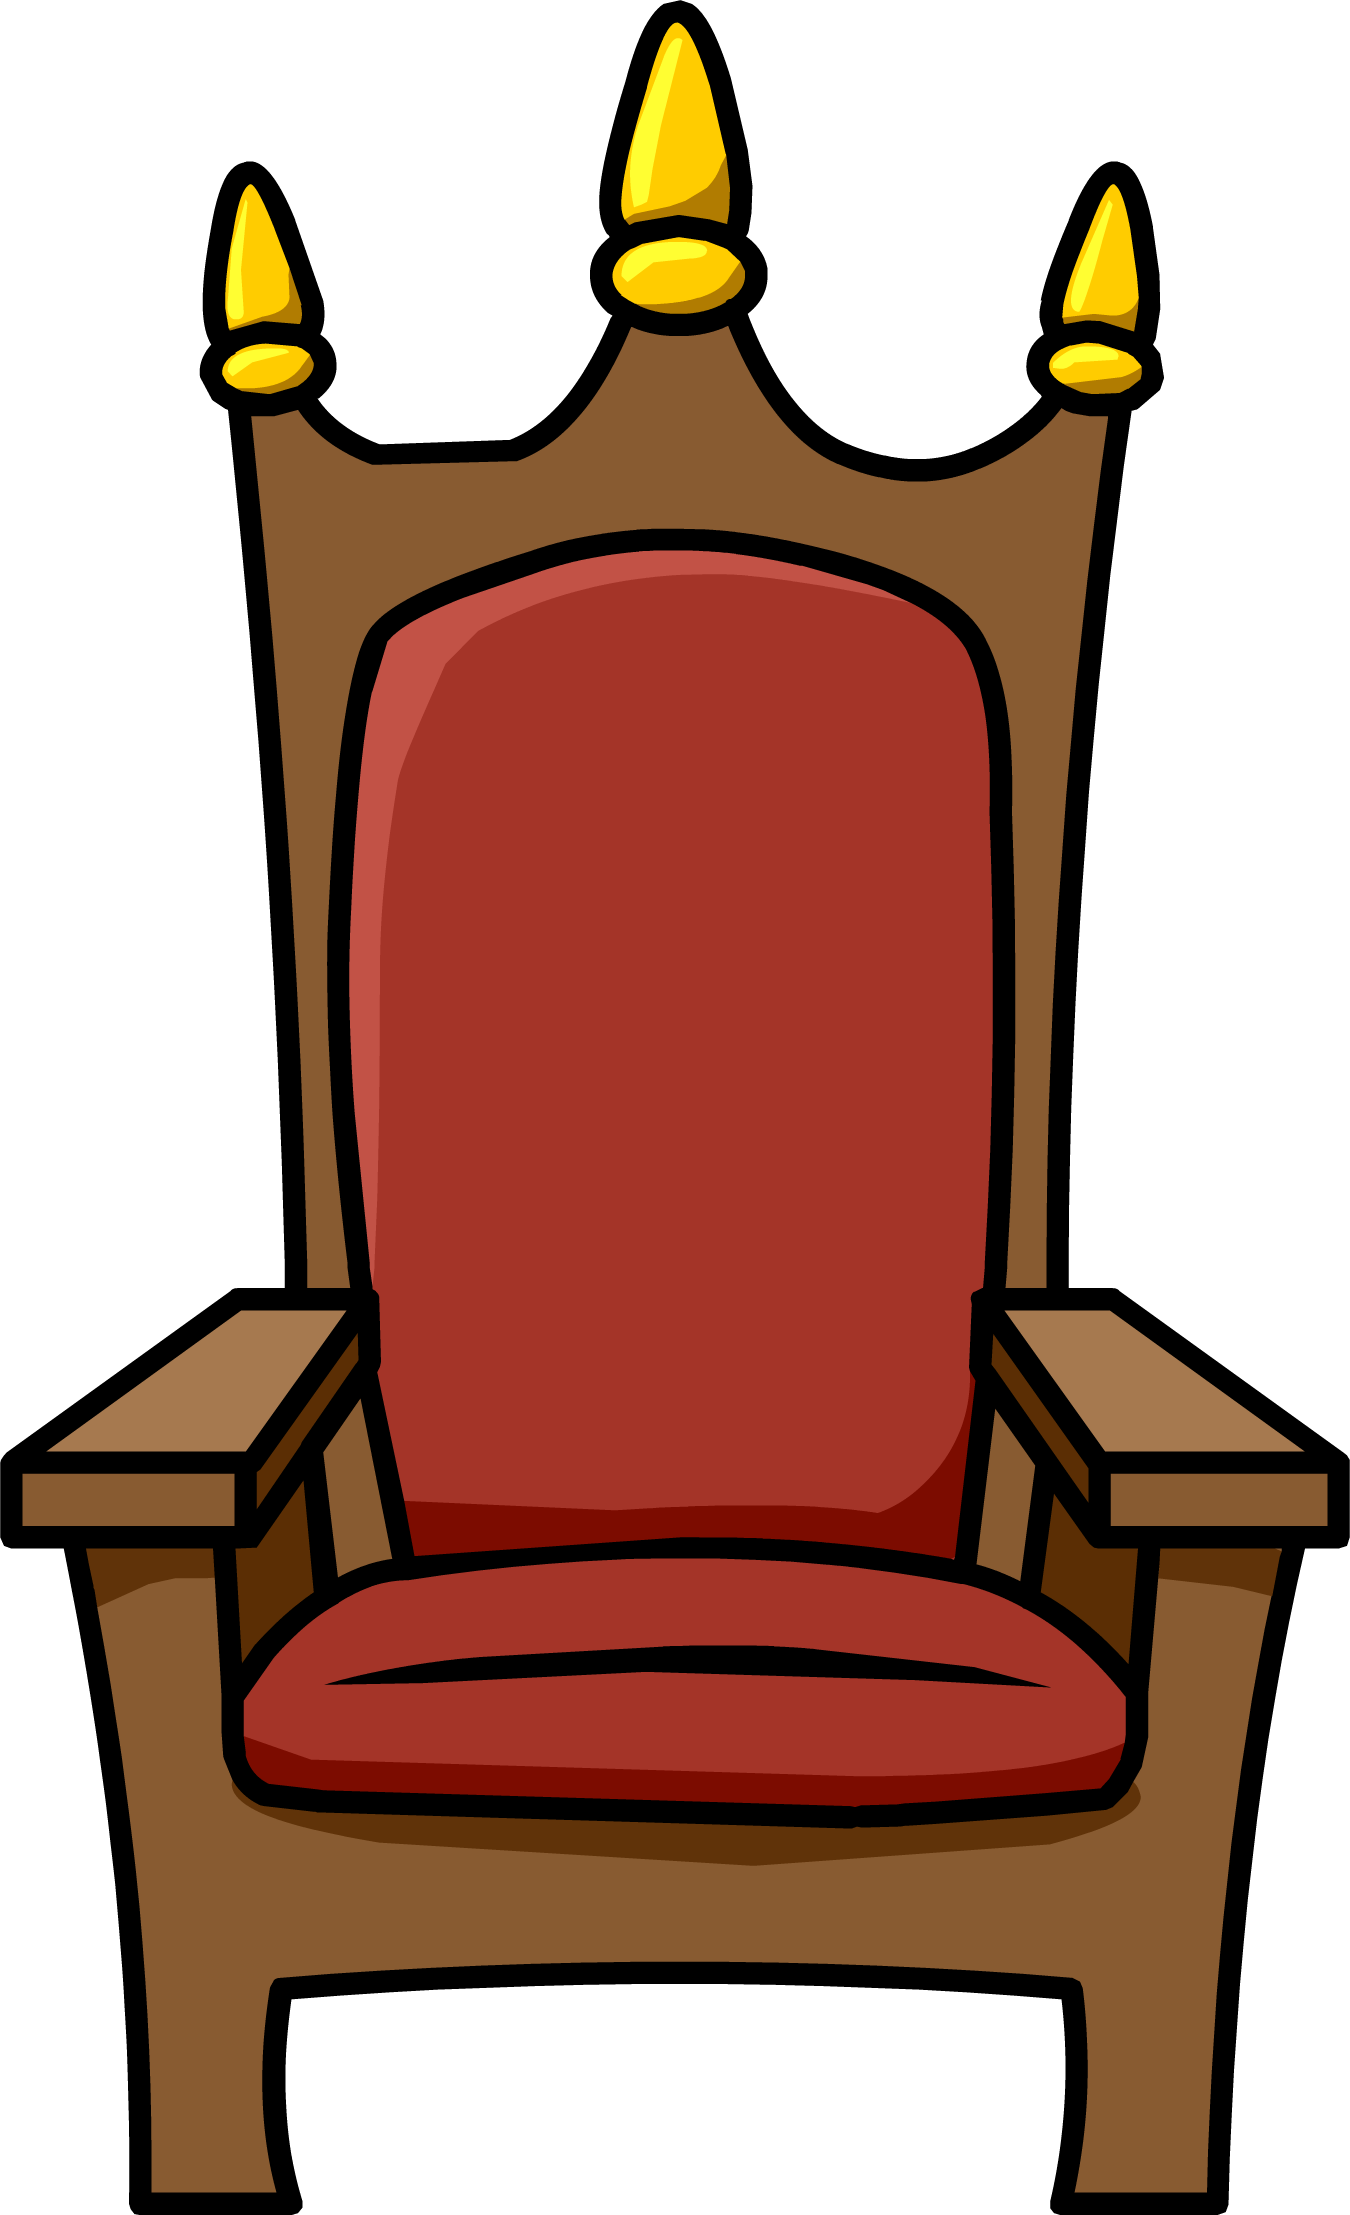 banner download throne vector king's #104759296